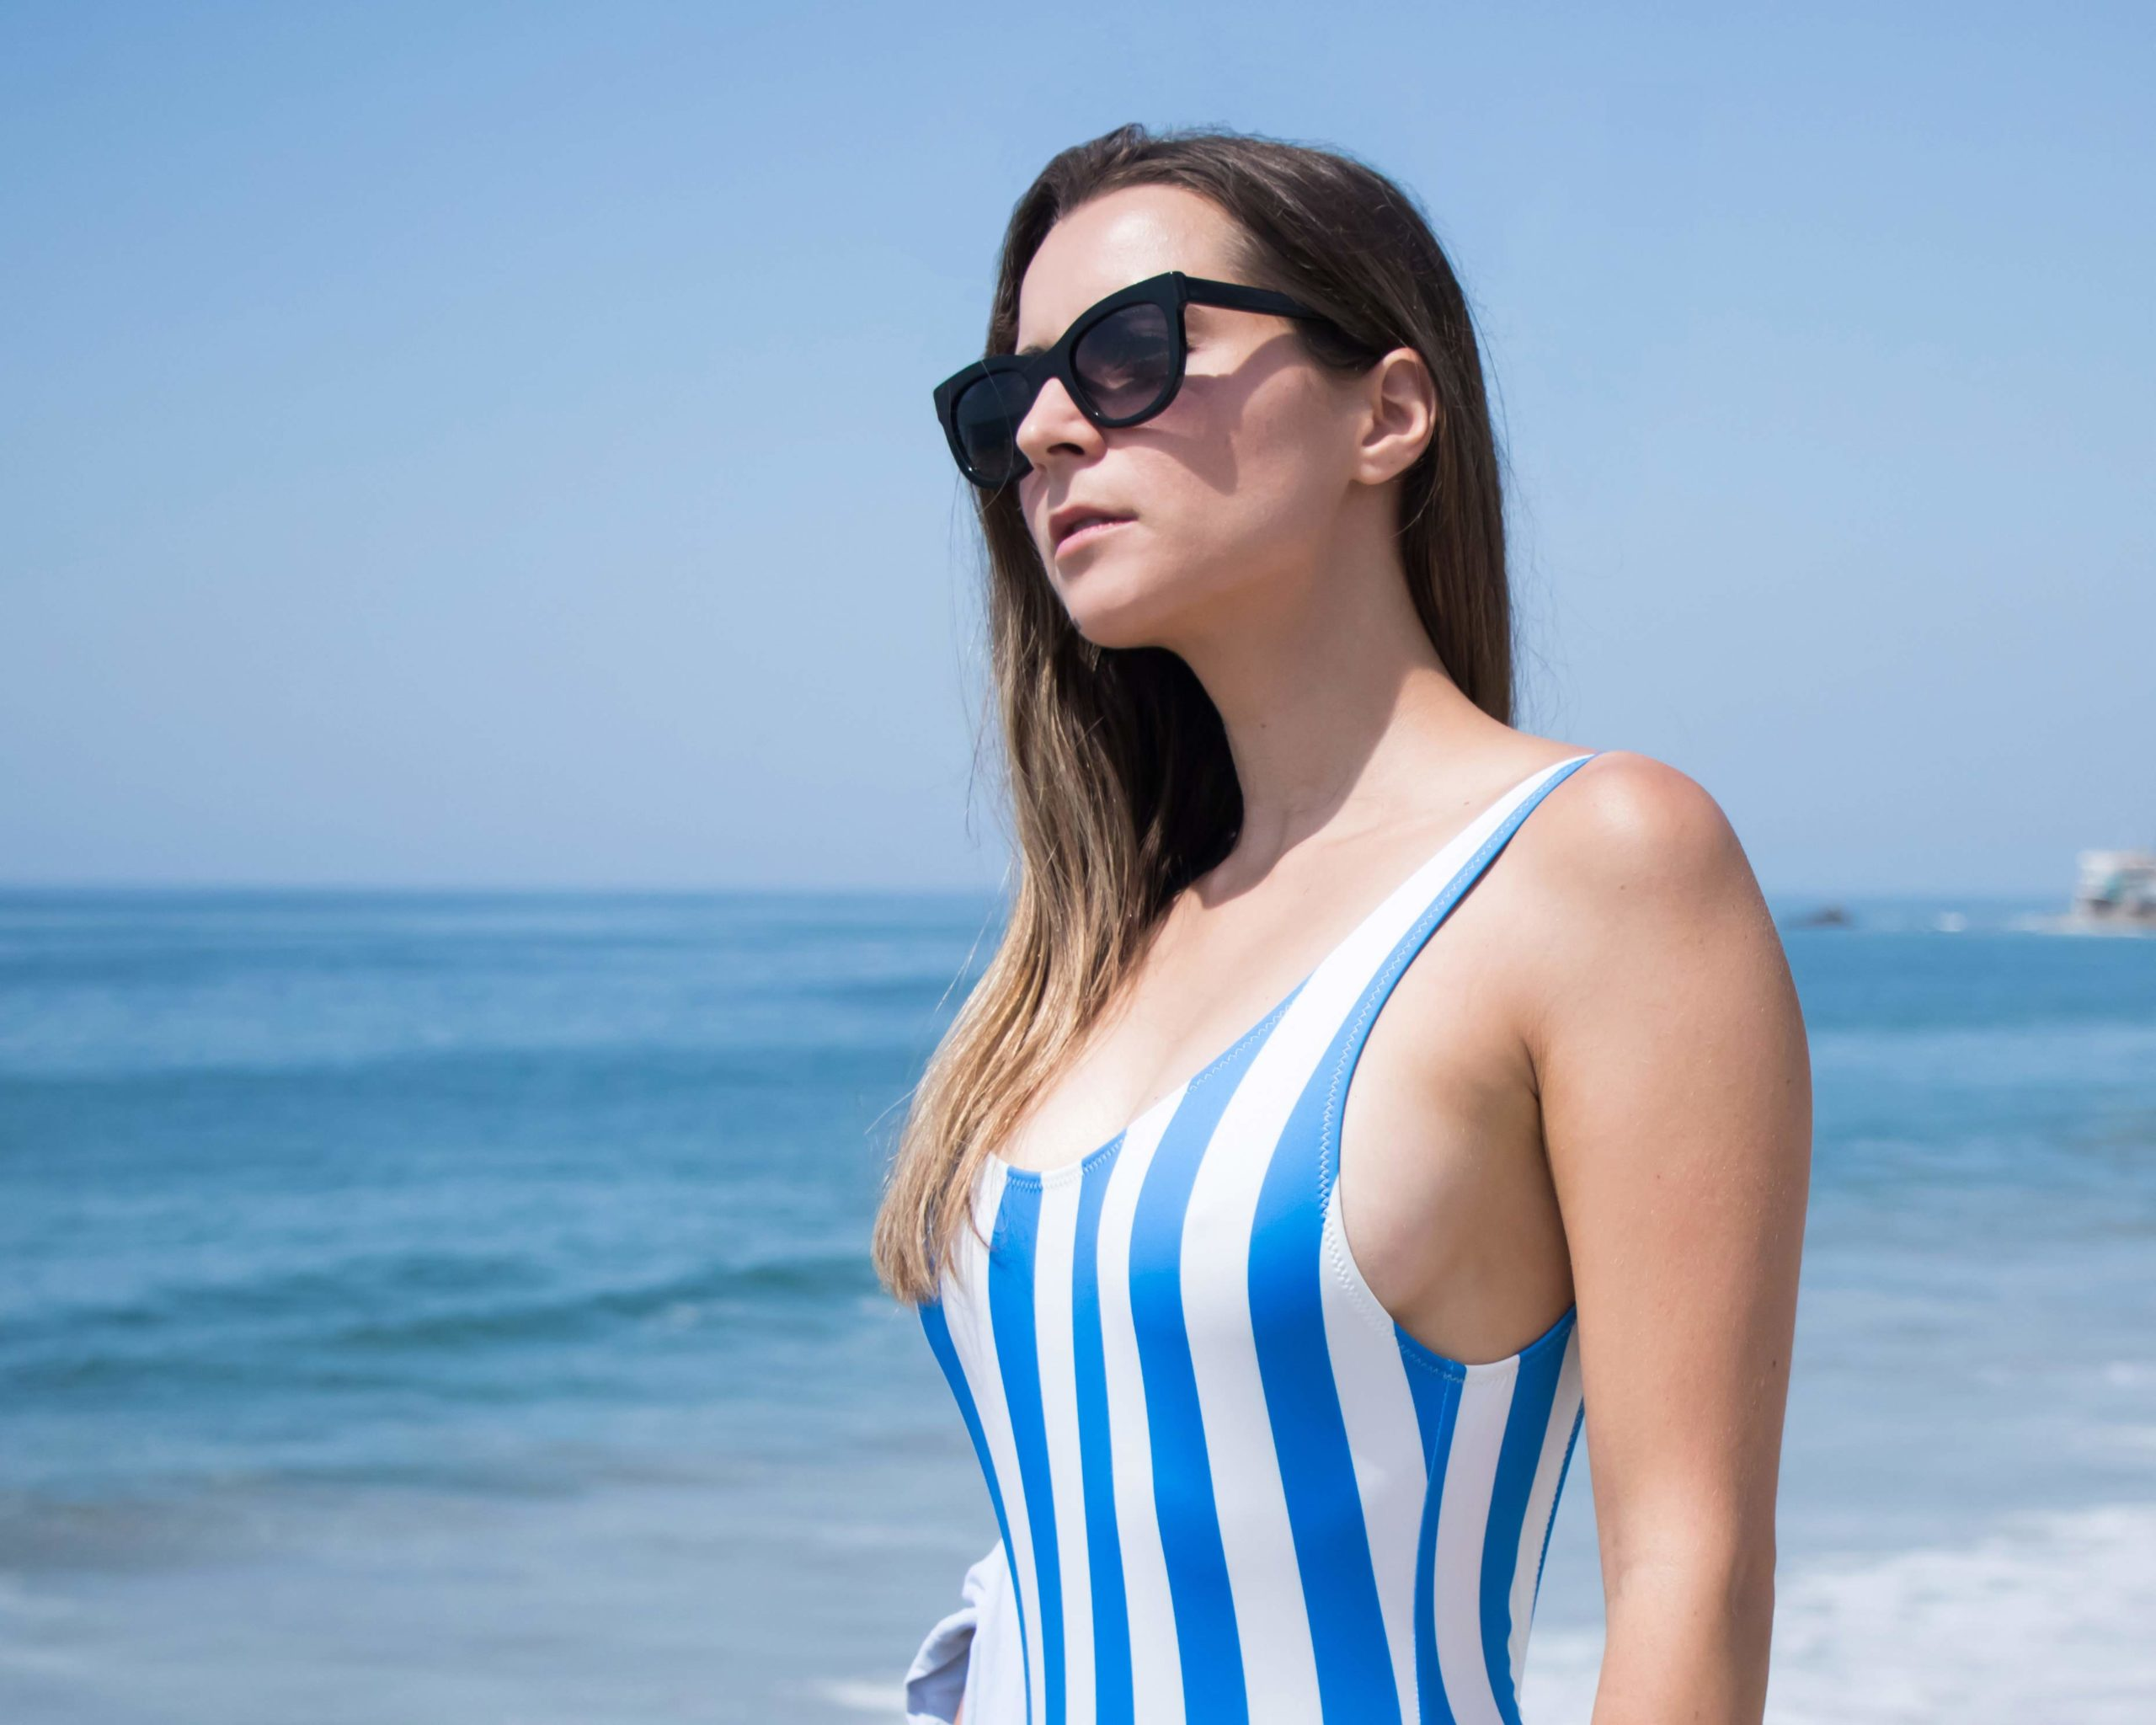 Solid and Striped - Anne-Marie Swimsuit - August Edit: Summer Swimsuit and Bodysuit to show your best back! More on Modersvp.com